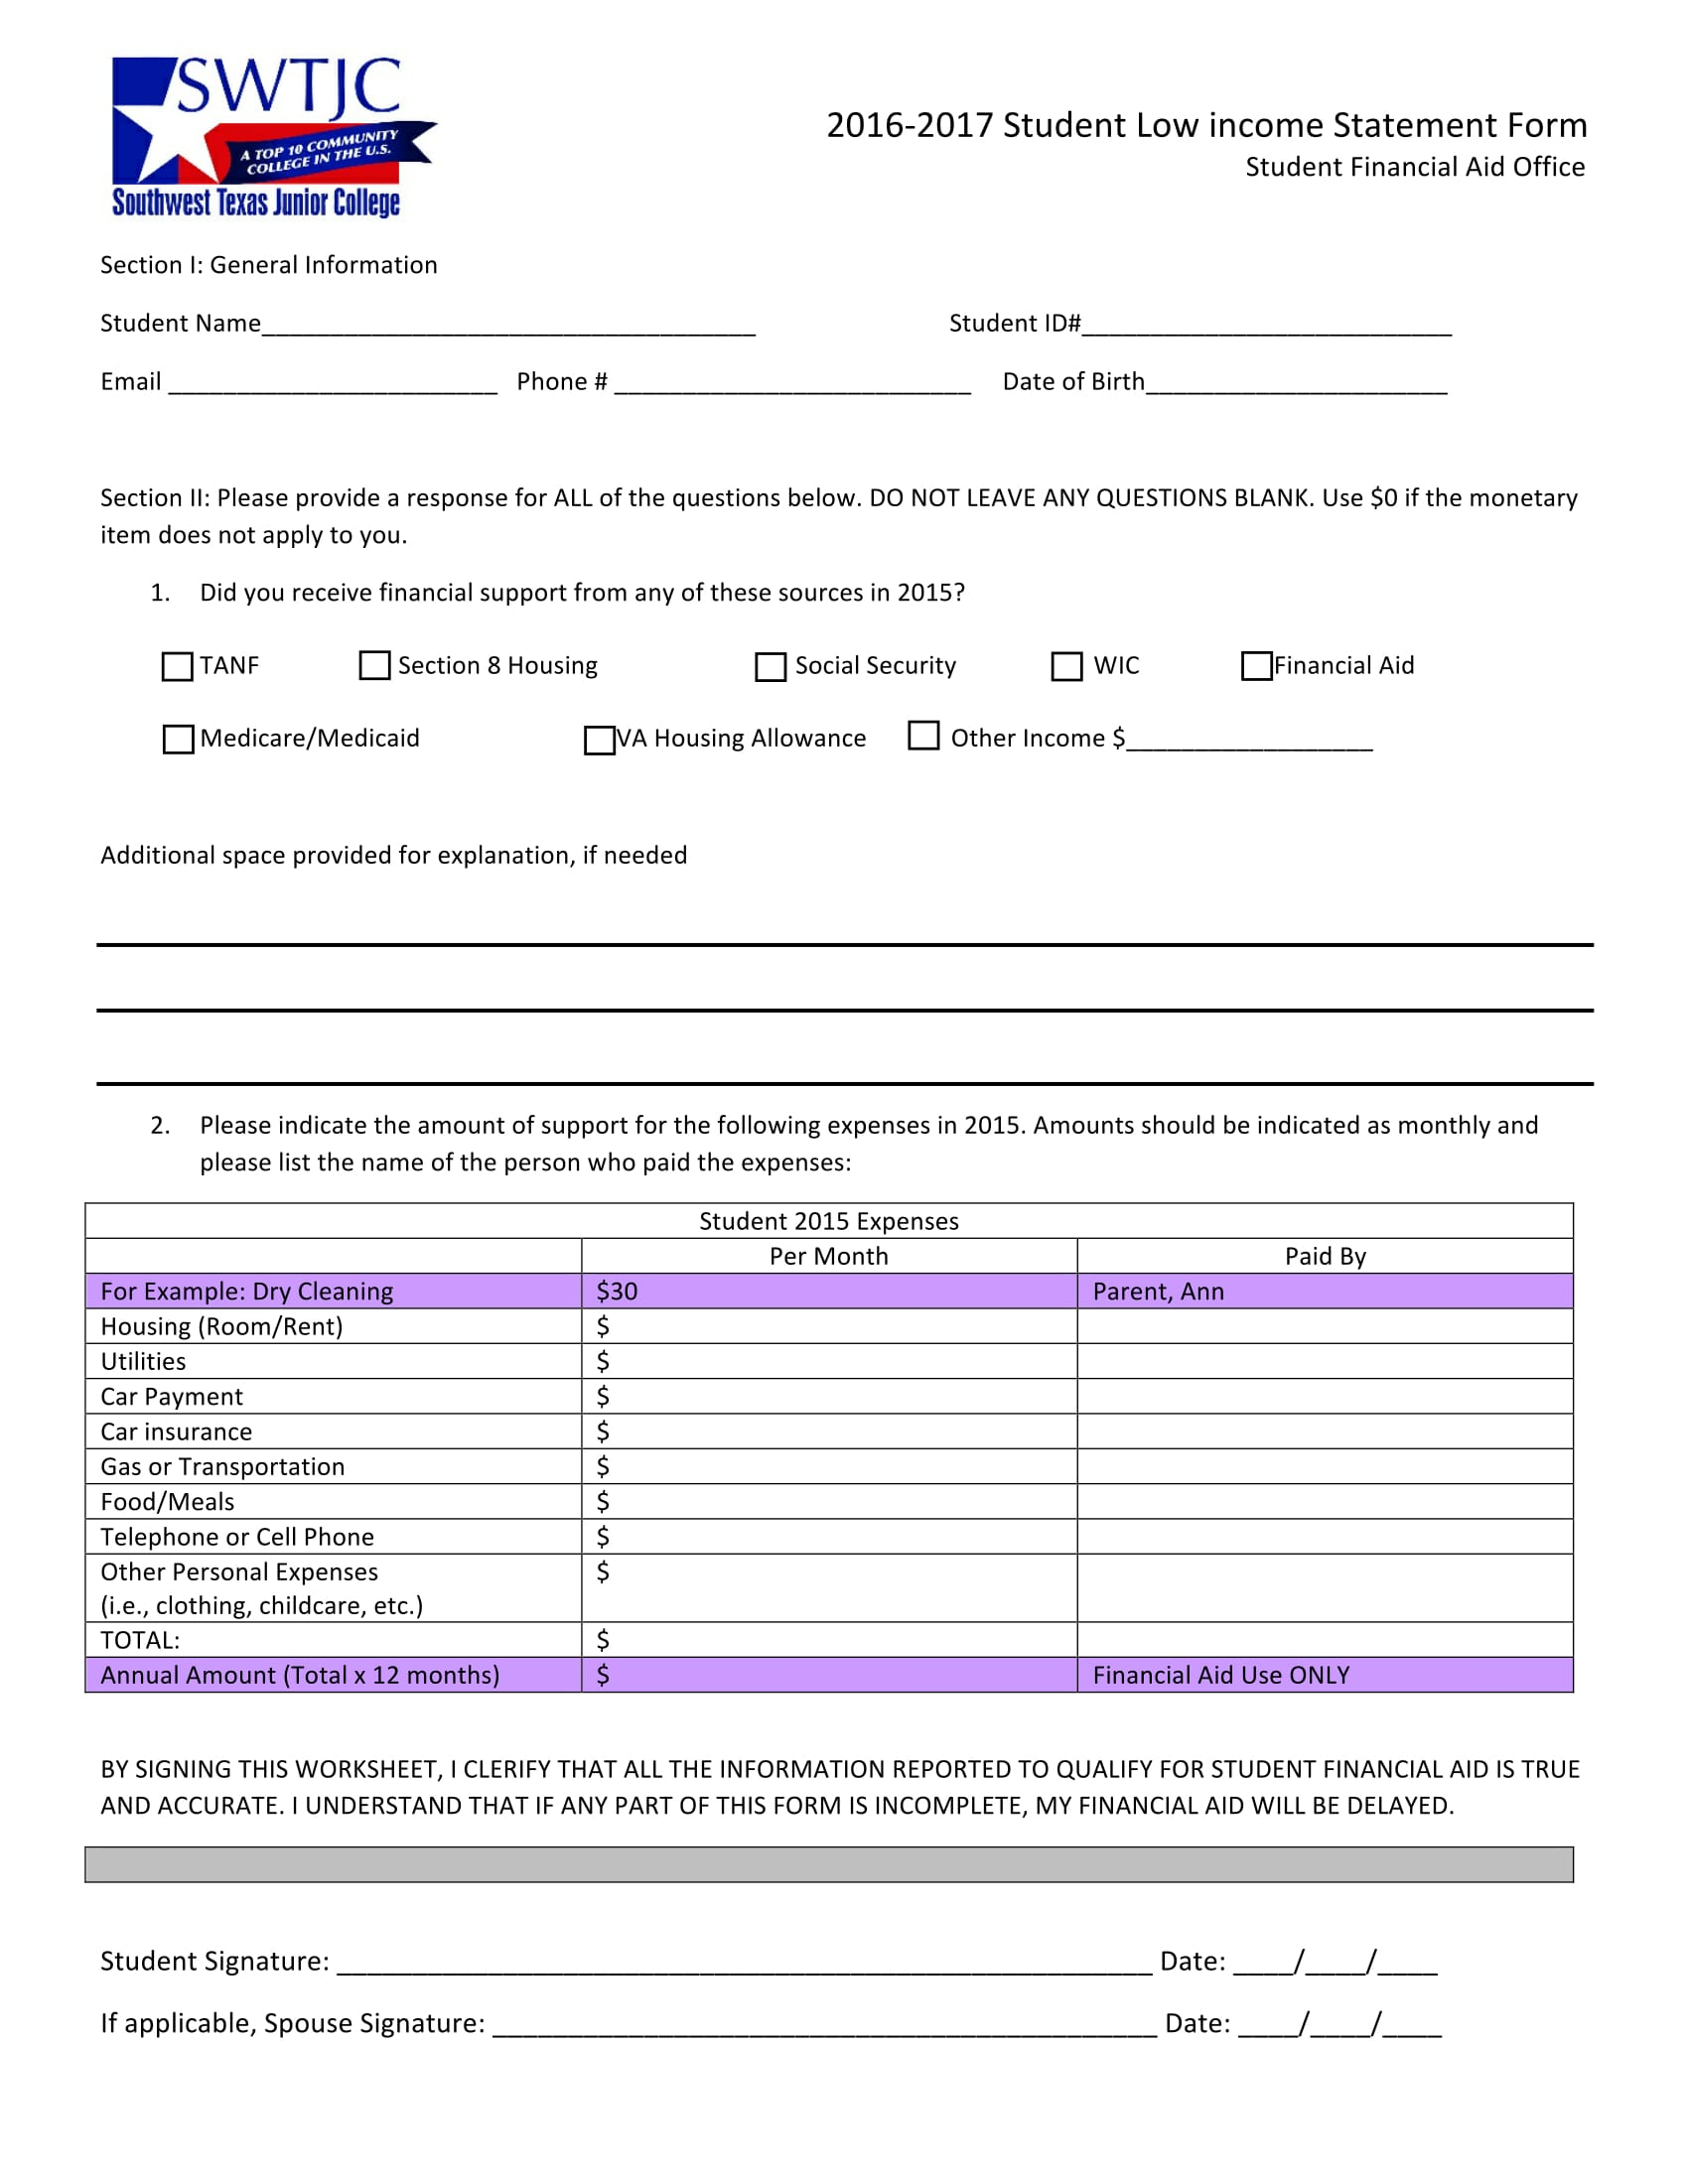 student low income statement form 1